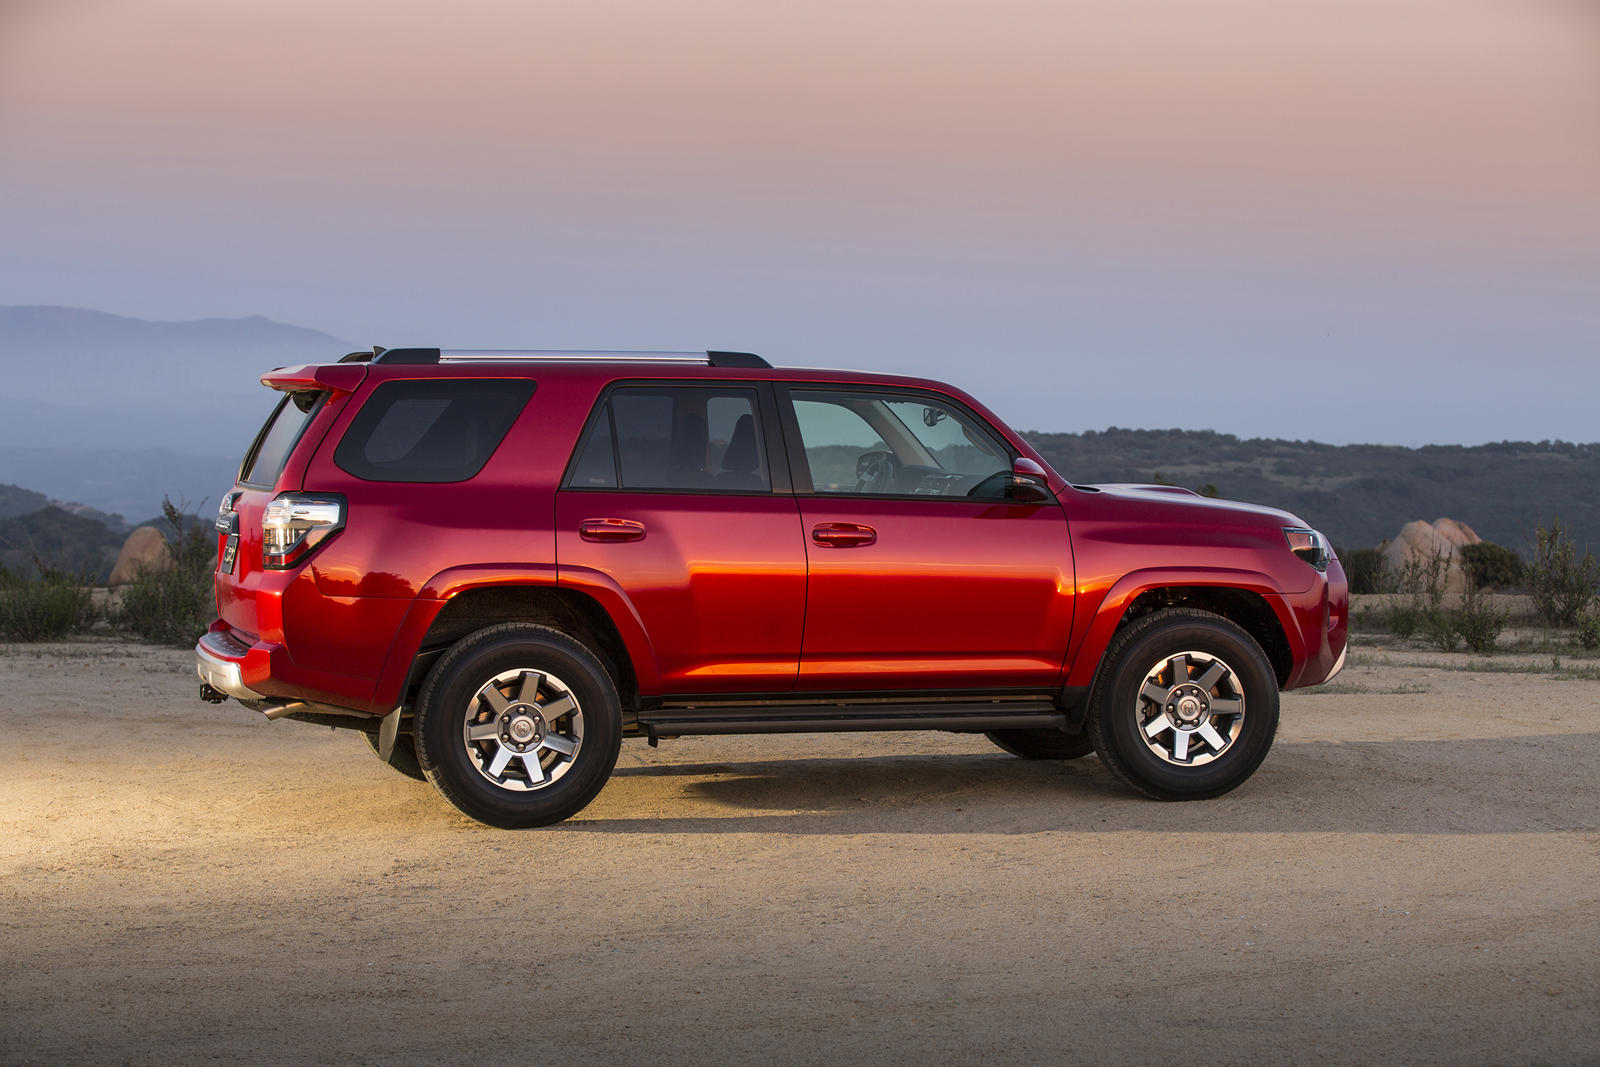 35 Years Of Toyota 4runner Japanese Talk 1984 1989 Sale The Year Was When Launched Original Suv And Over Past Rough Tough Off Roader Has Proven Itself Time Again